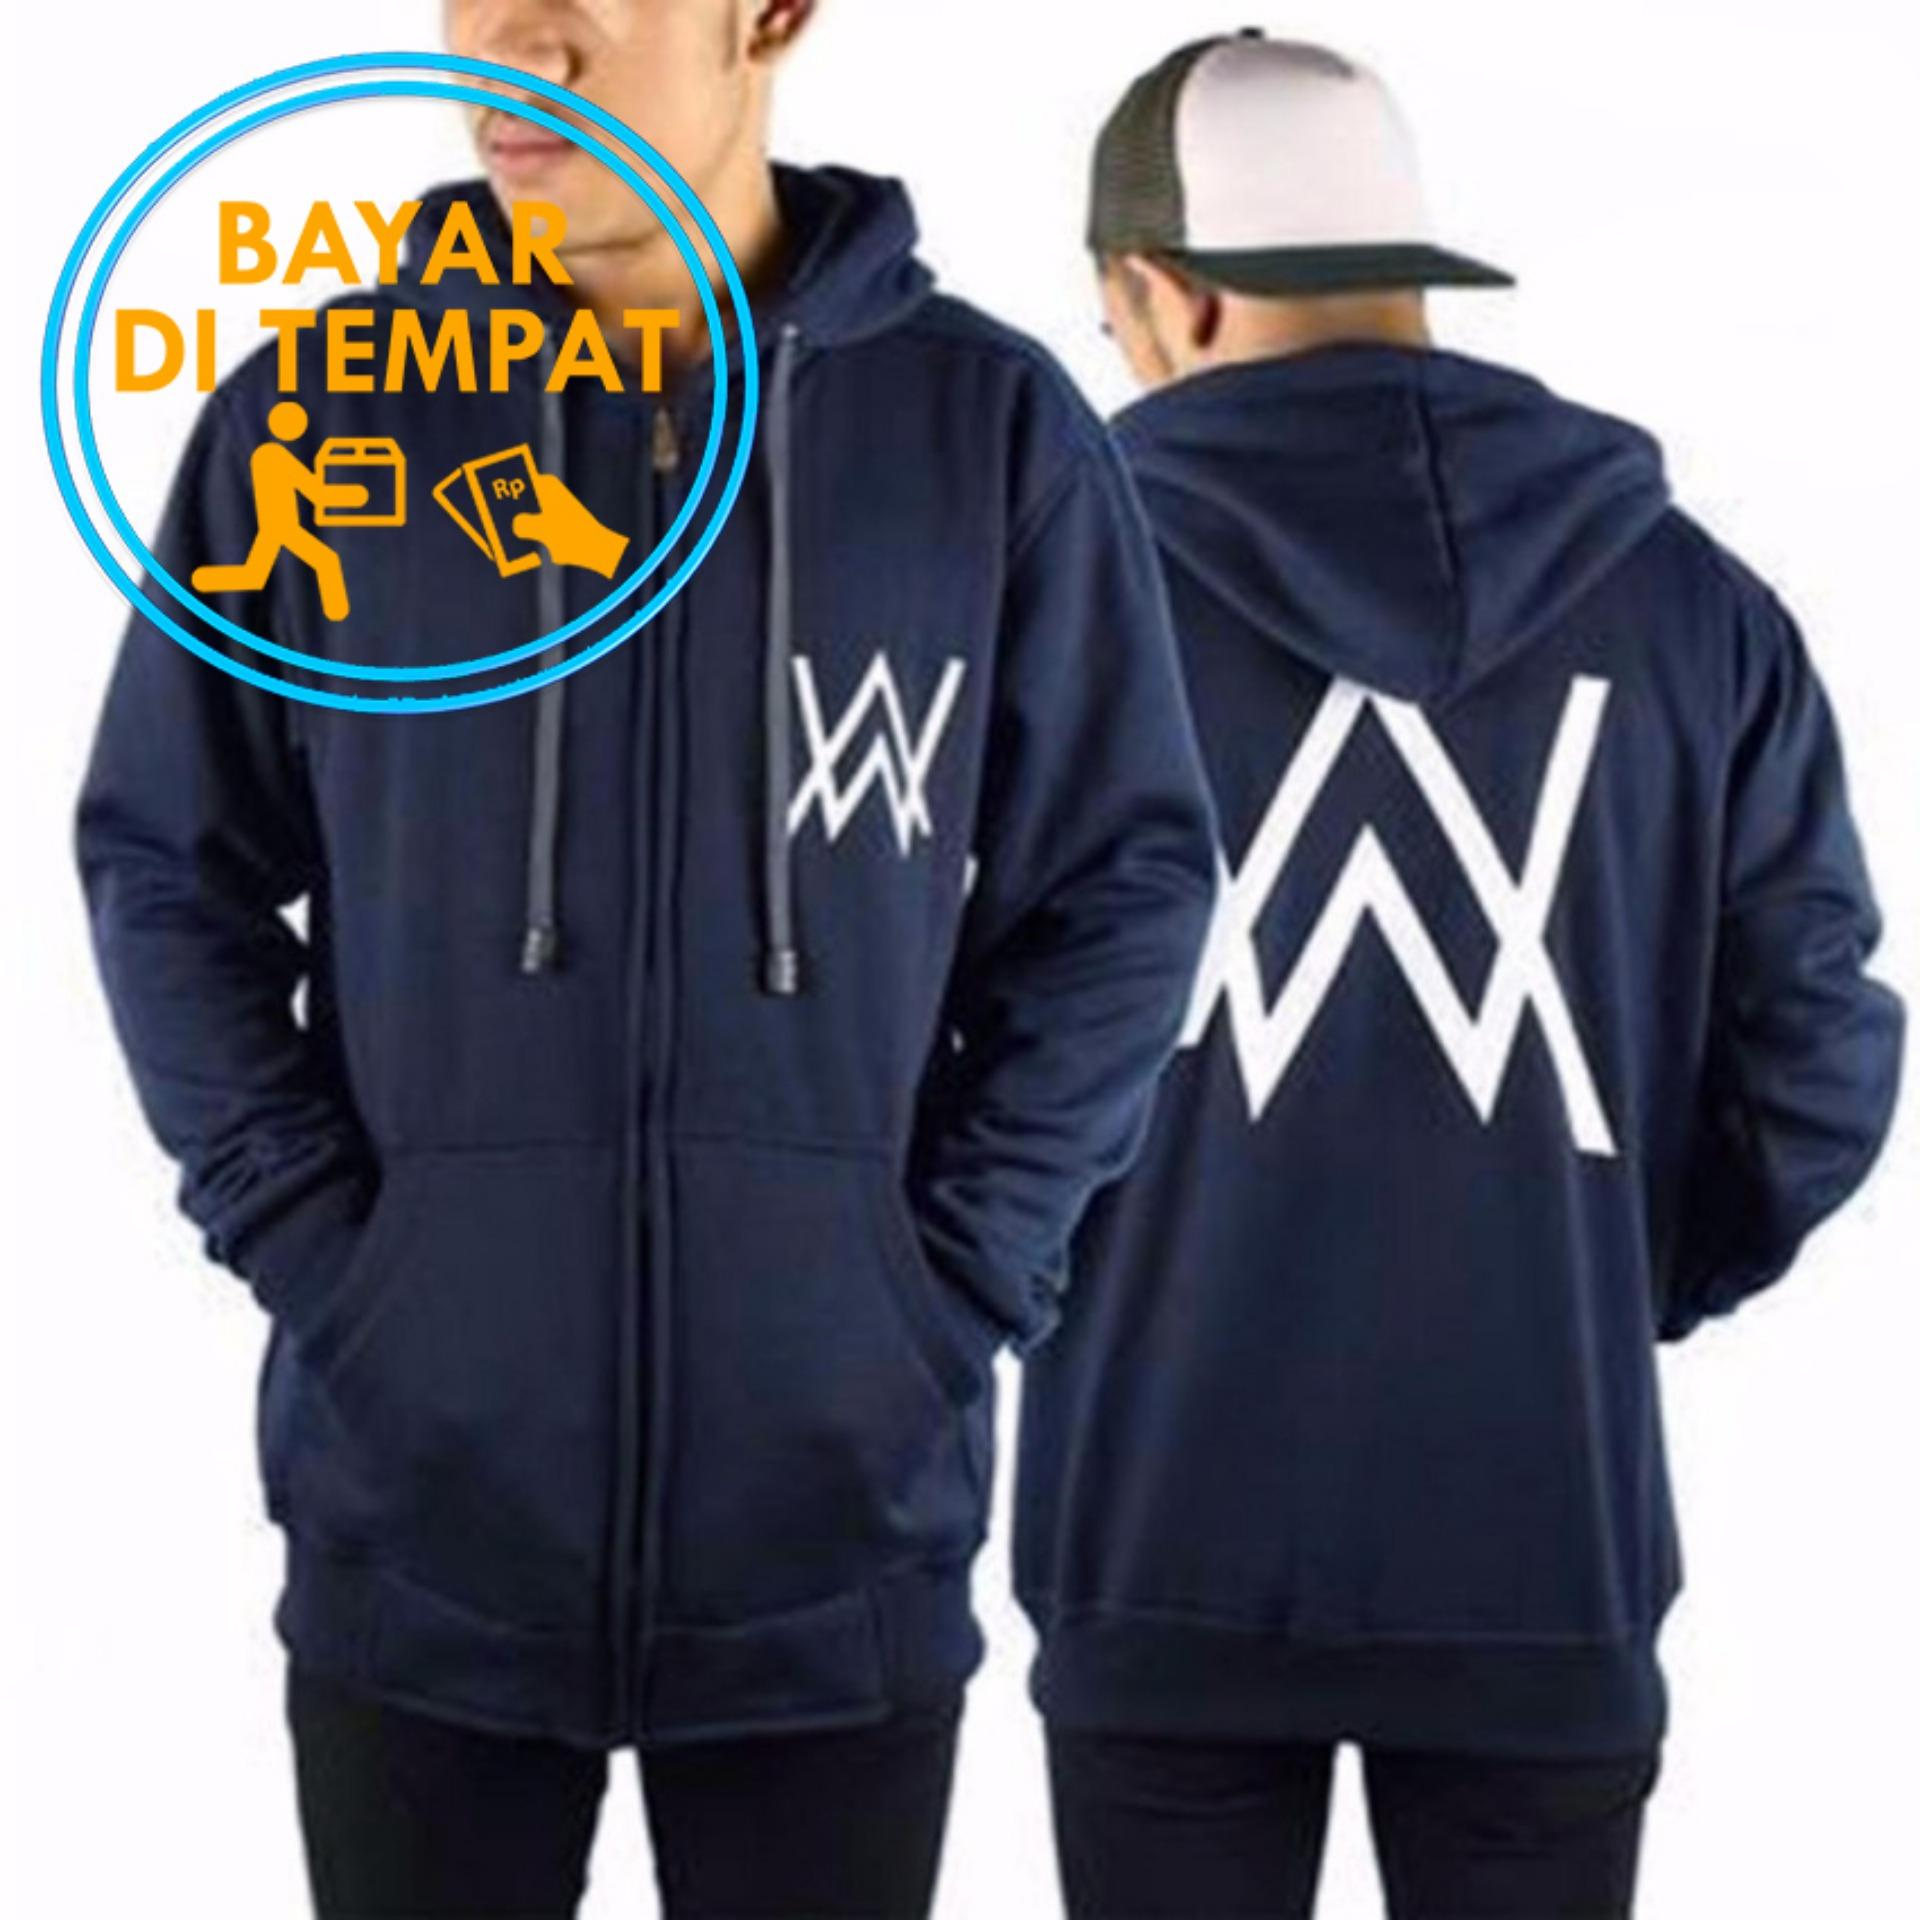 Diskon Jaket Sweater Murah Alan Walker Black Blue Navy Branded